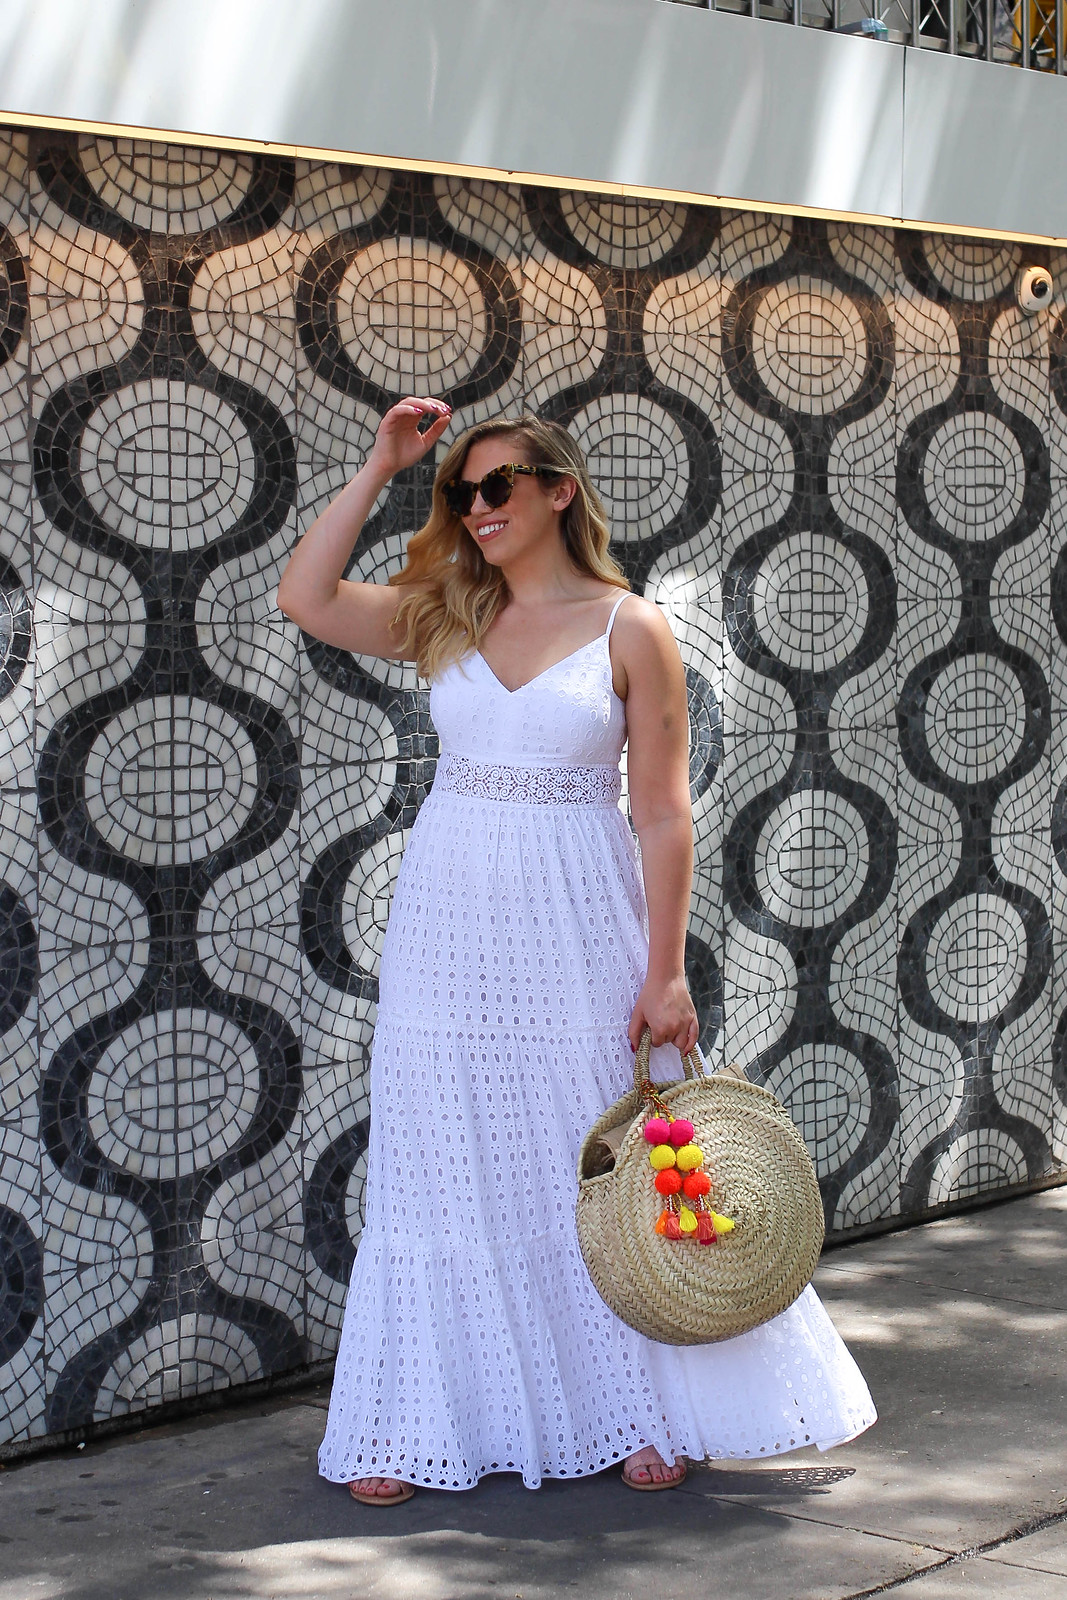 Lily Pulitzer White Eyelet Maxi Dress | The Best Little White Dresses Under $50 for Summer | Summer Outfit Ideas | LWD Little White Dress | Casual Outfit Inspiration